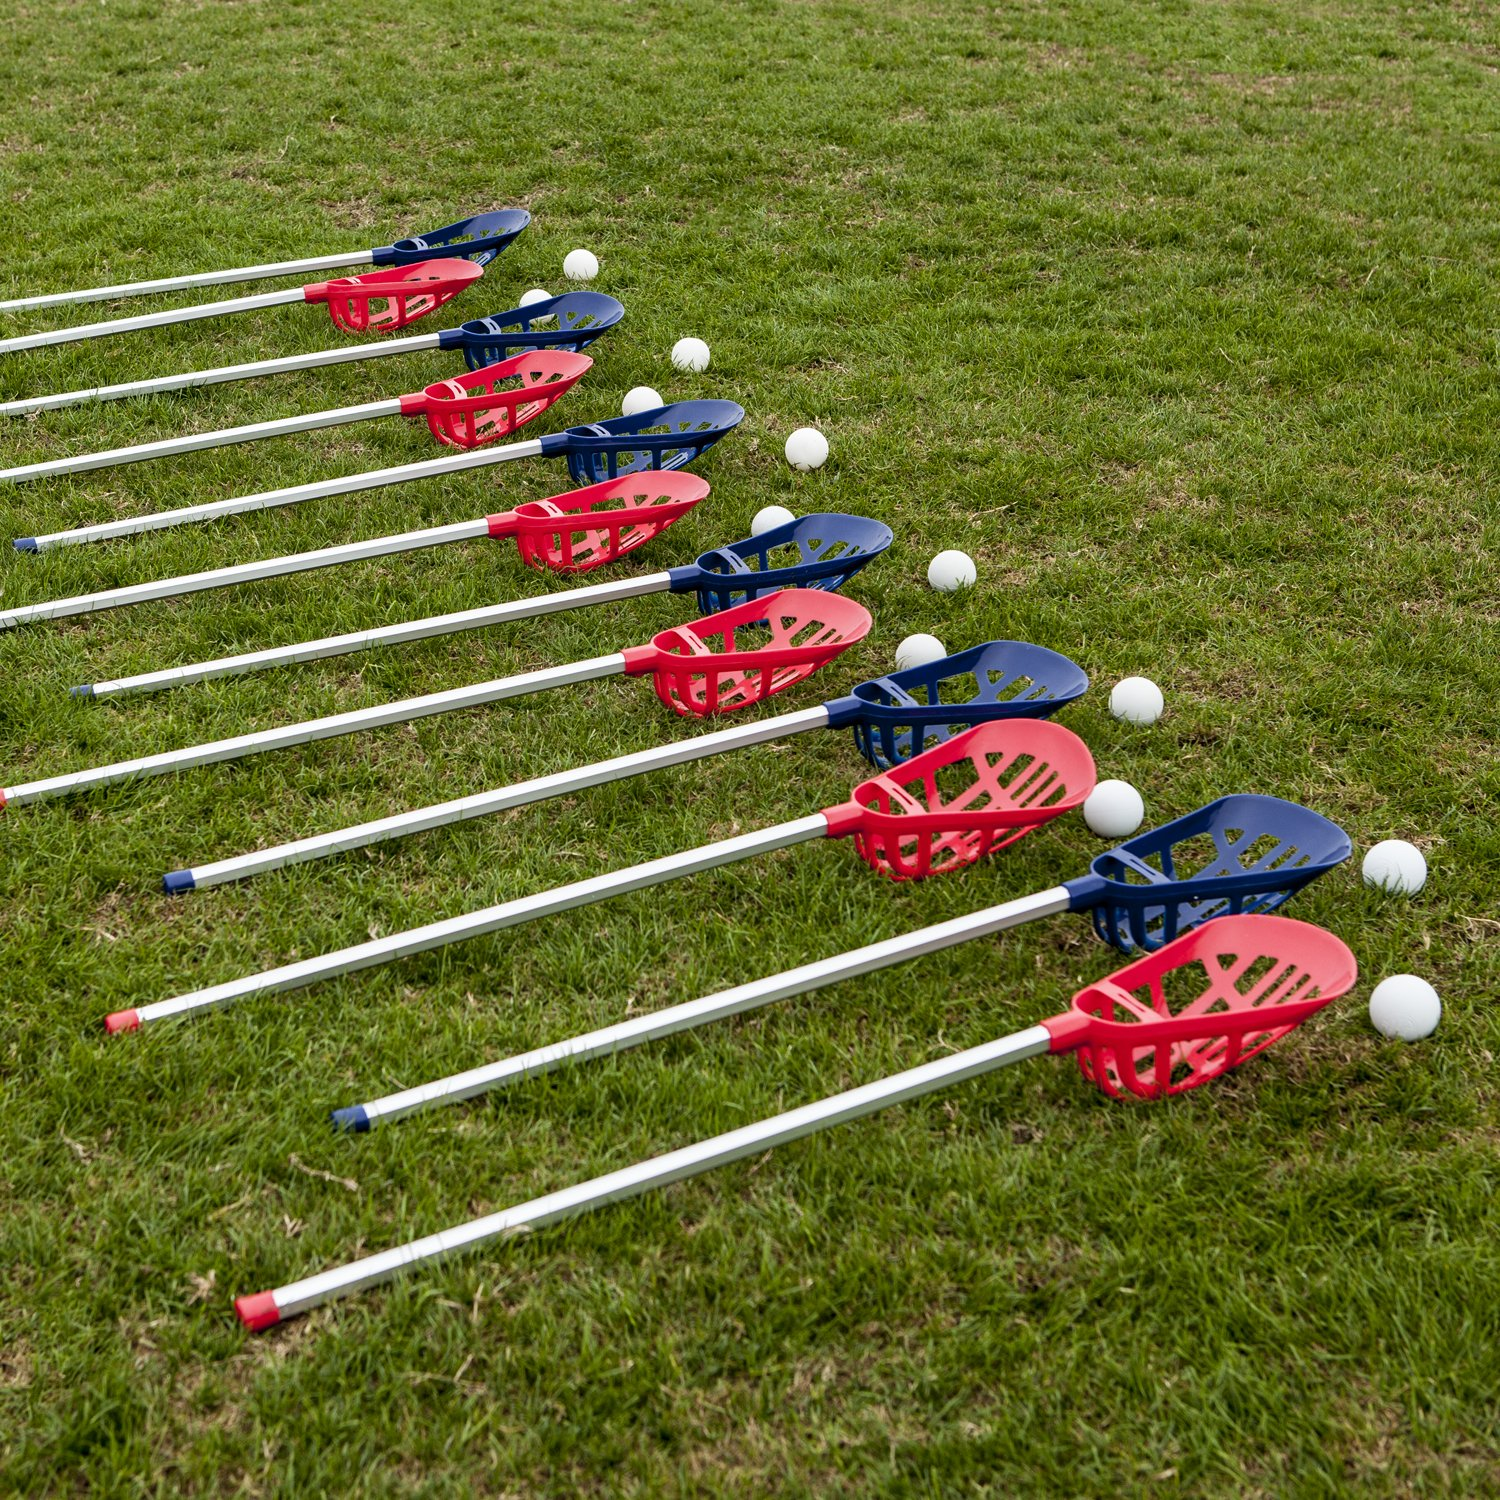 Champion Sports Soft Lacrosse Set: Training Equipment for Boys, Girls, Kids, Youth and Amateur Athletes - 12 Aluminum Sticks and 6 Vinyl Balls for Indoor Outdoor Use by Champion Sports (Image #5)